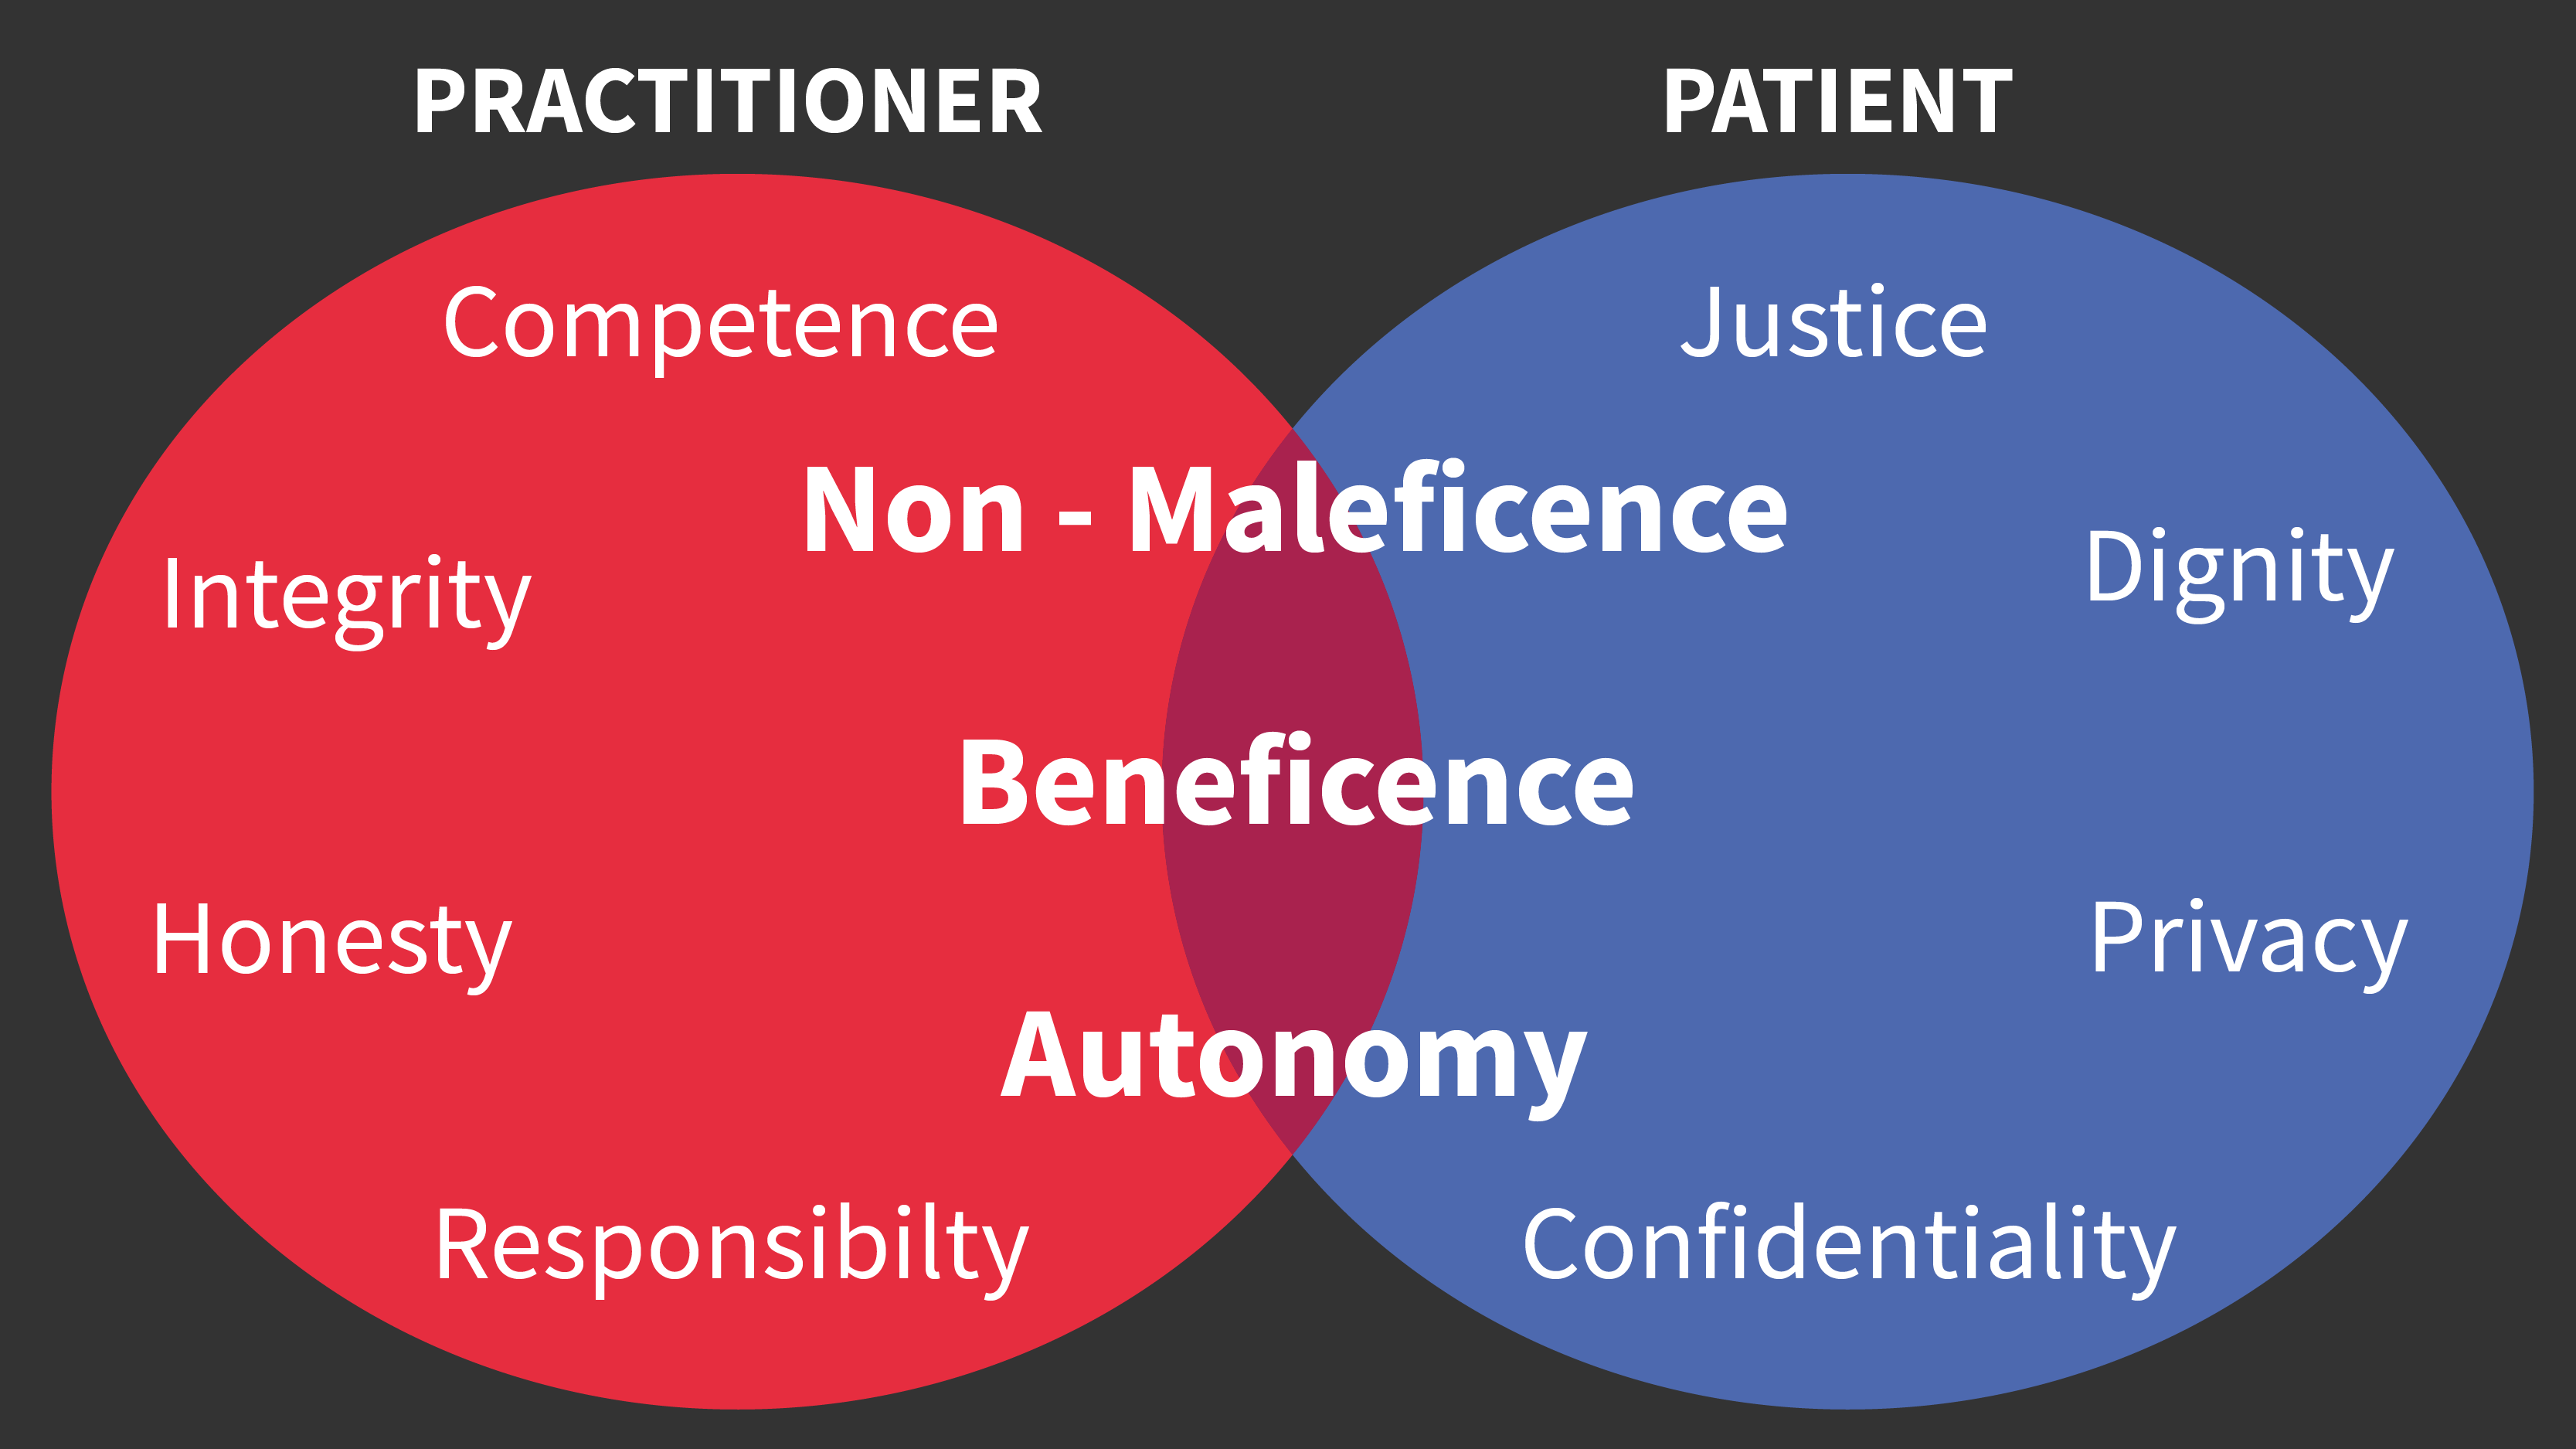 A Venn diagram showing the ethical responsibilities of practitioners and patients and where they overlap